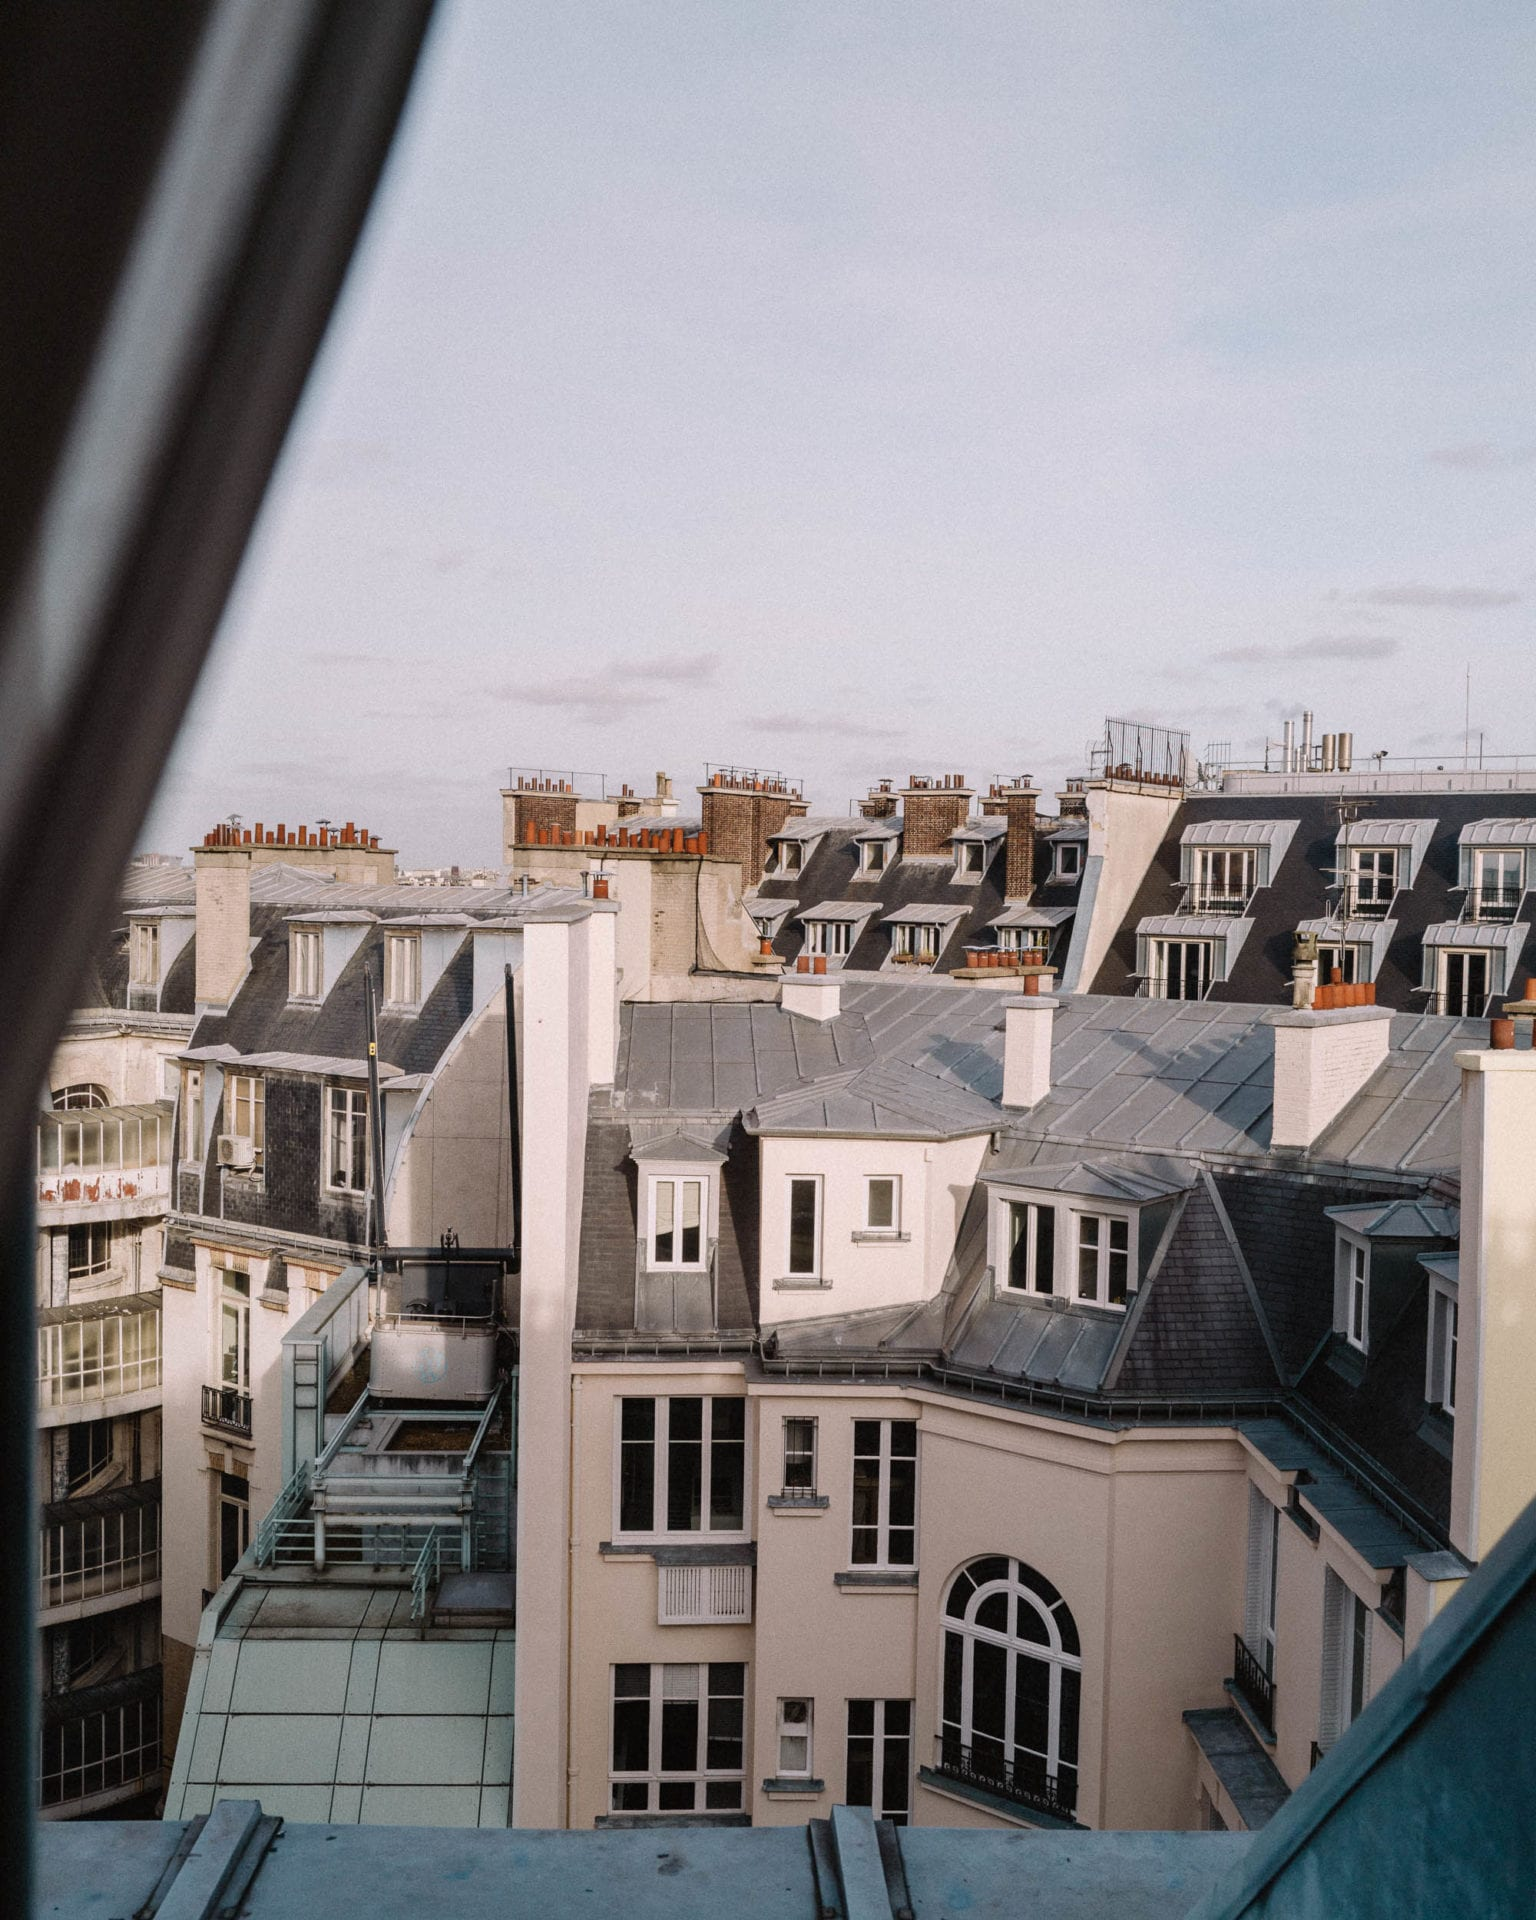 Parisian rooftop views from Le Royal Monceau Hotel